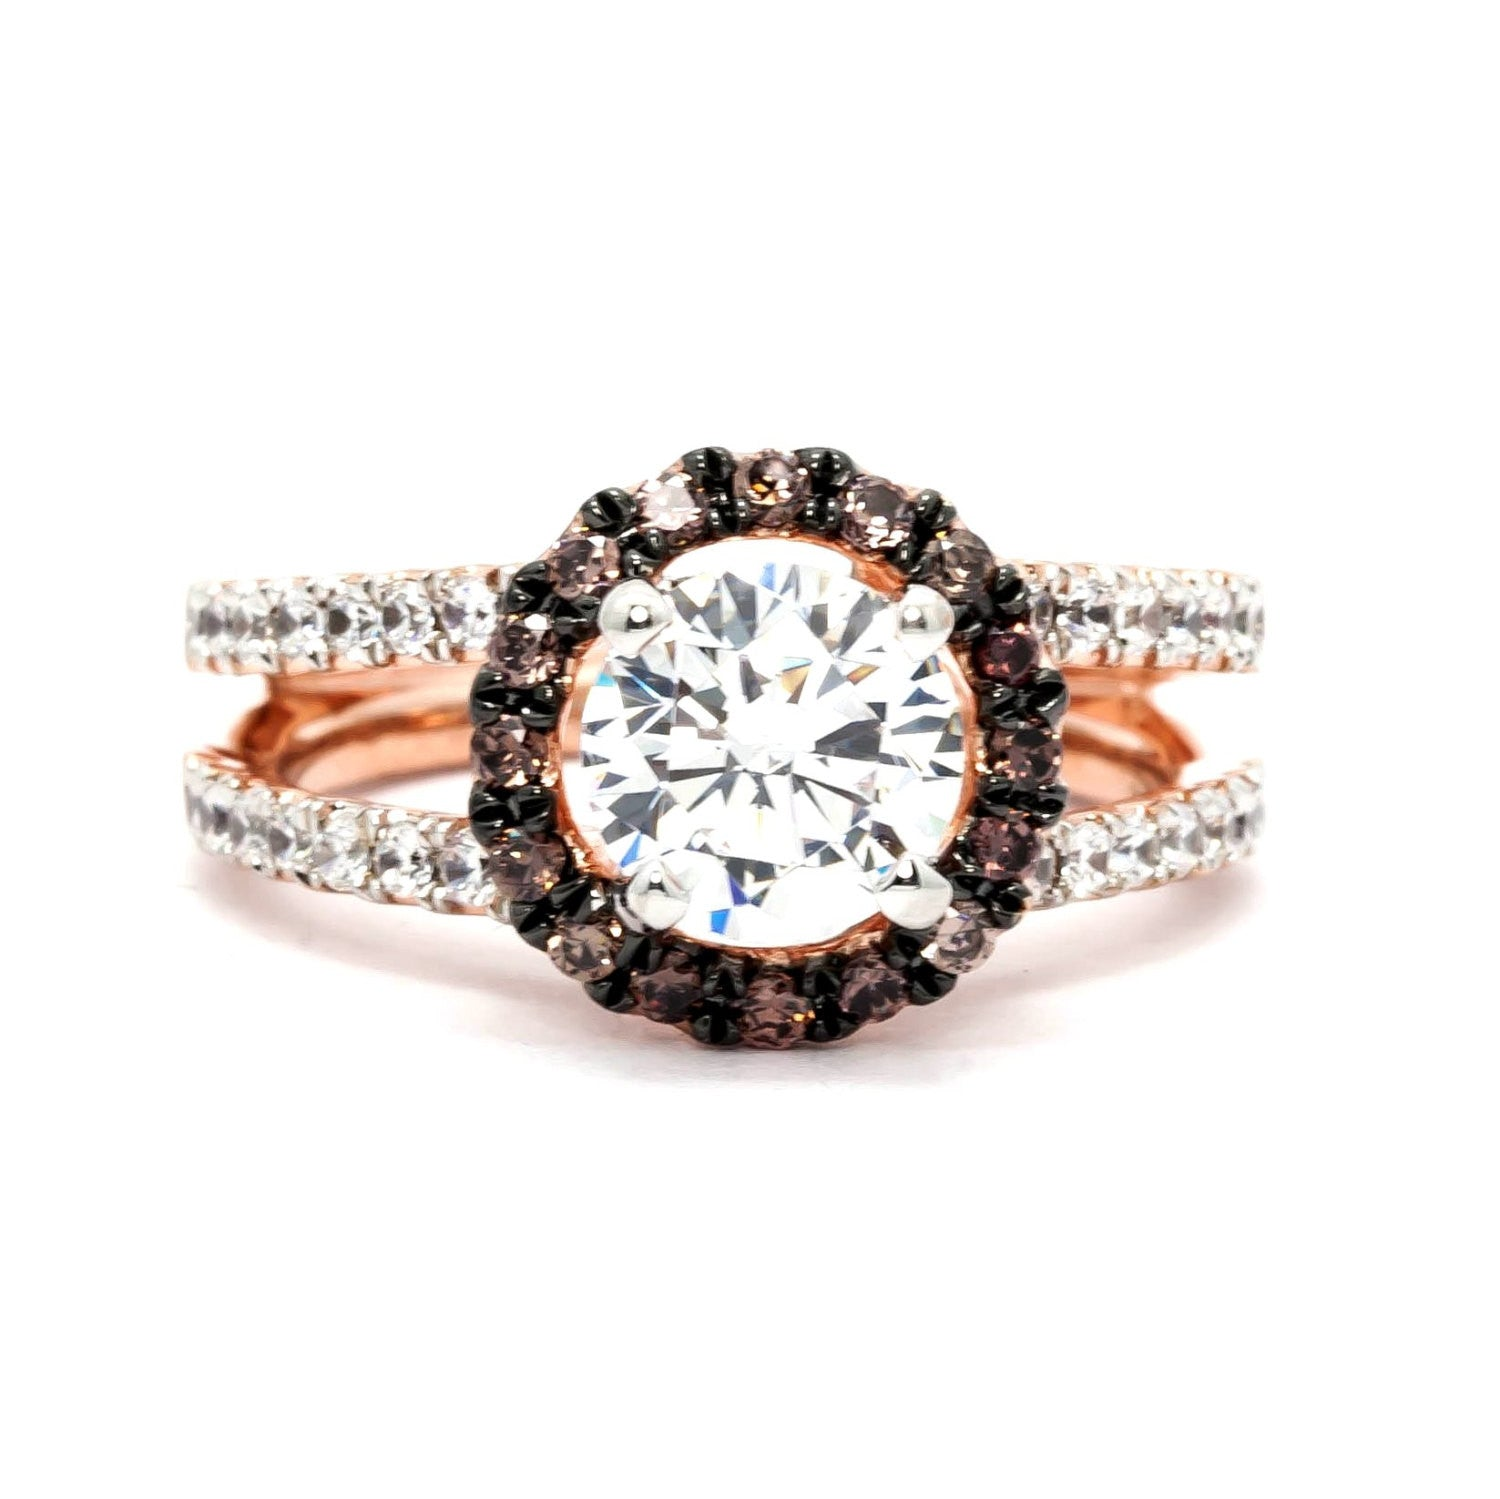 Floating Halo Rose Gold Split Shank 1.25 Carat Forever Brilliant Moissanite Engagement Ring, With 1.03 Carat White & Chocolate Brown Diamonds, Anniversary Ring - FB94625